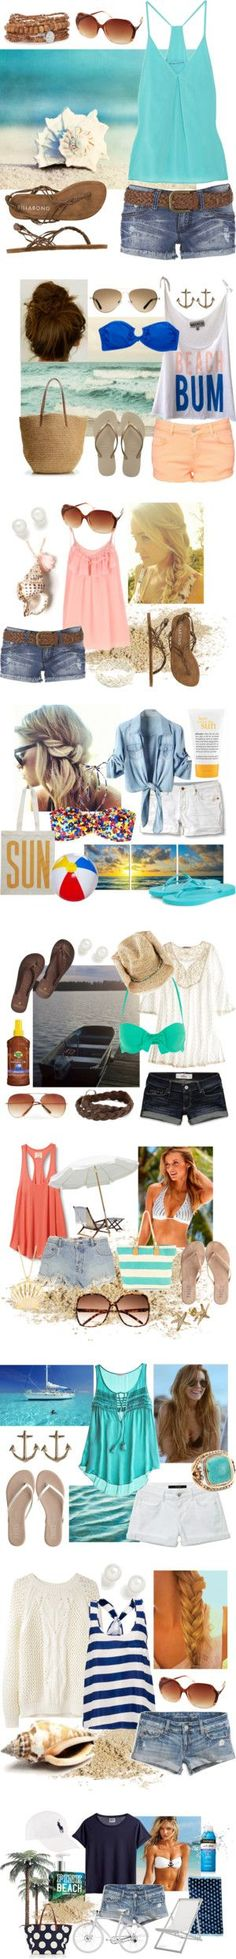 Can't wait for #summer outfits #summer clothes style #my summer clothes| http://summer-clothes-style.kira.lemoncoin.org